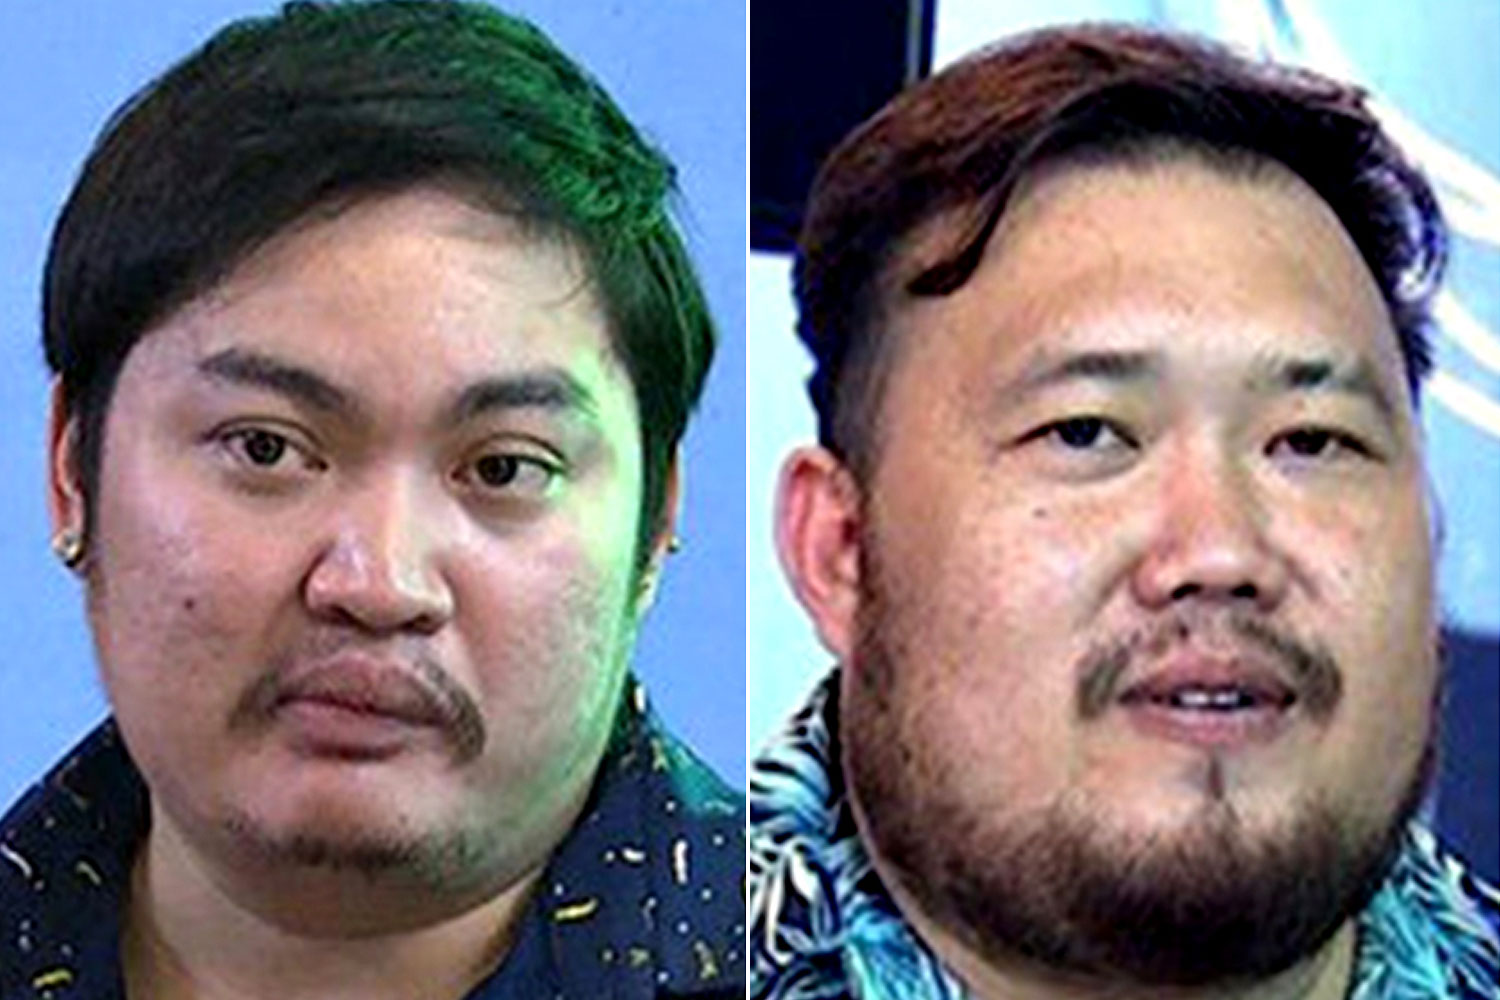 From left: Chaiyaphon: Detained for questioning; Nathi: One of the sex wanted suspects.